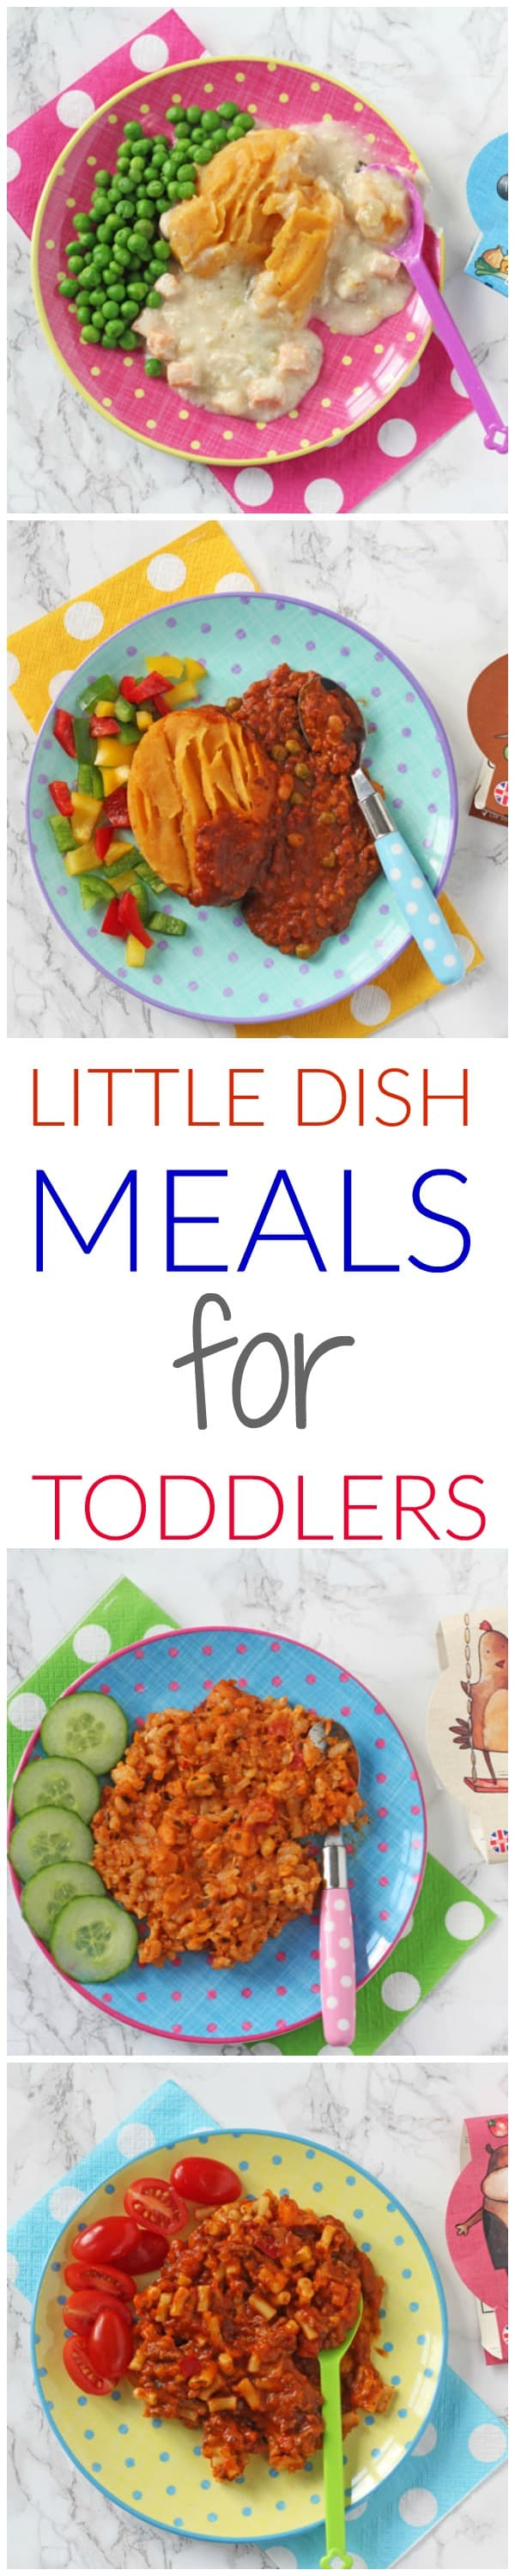 Little Dish pots and pies - delicious and nutritionally balanced meals for toddlers!